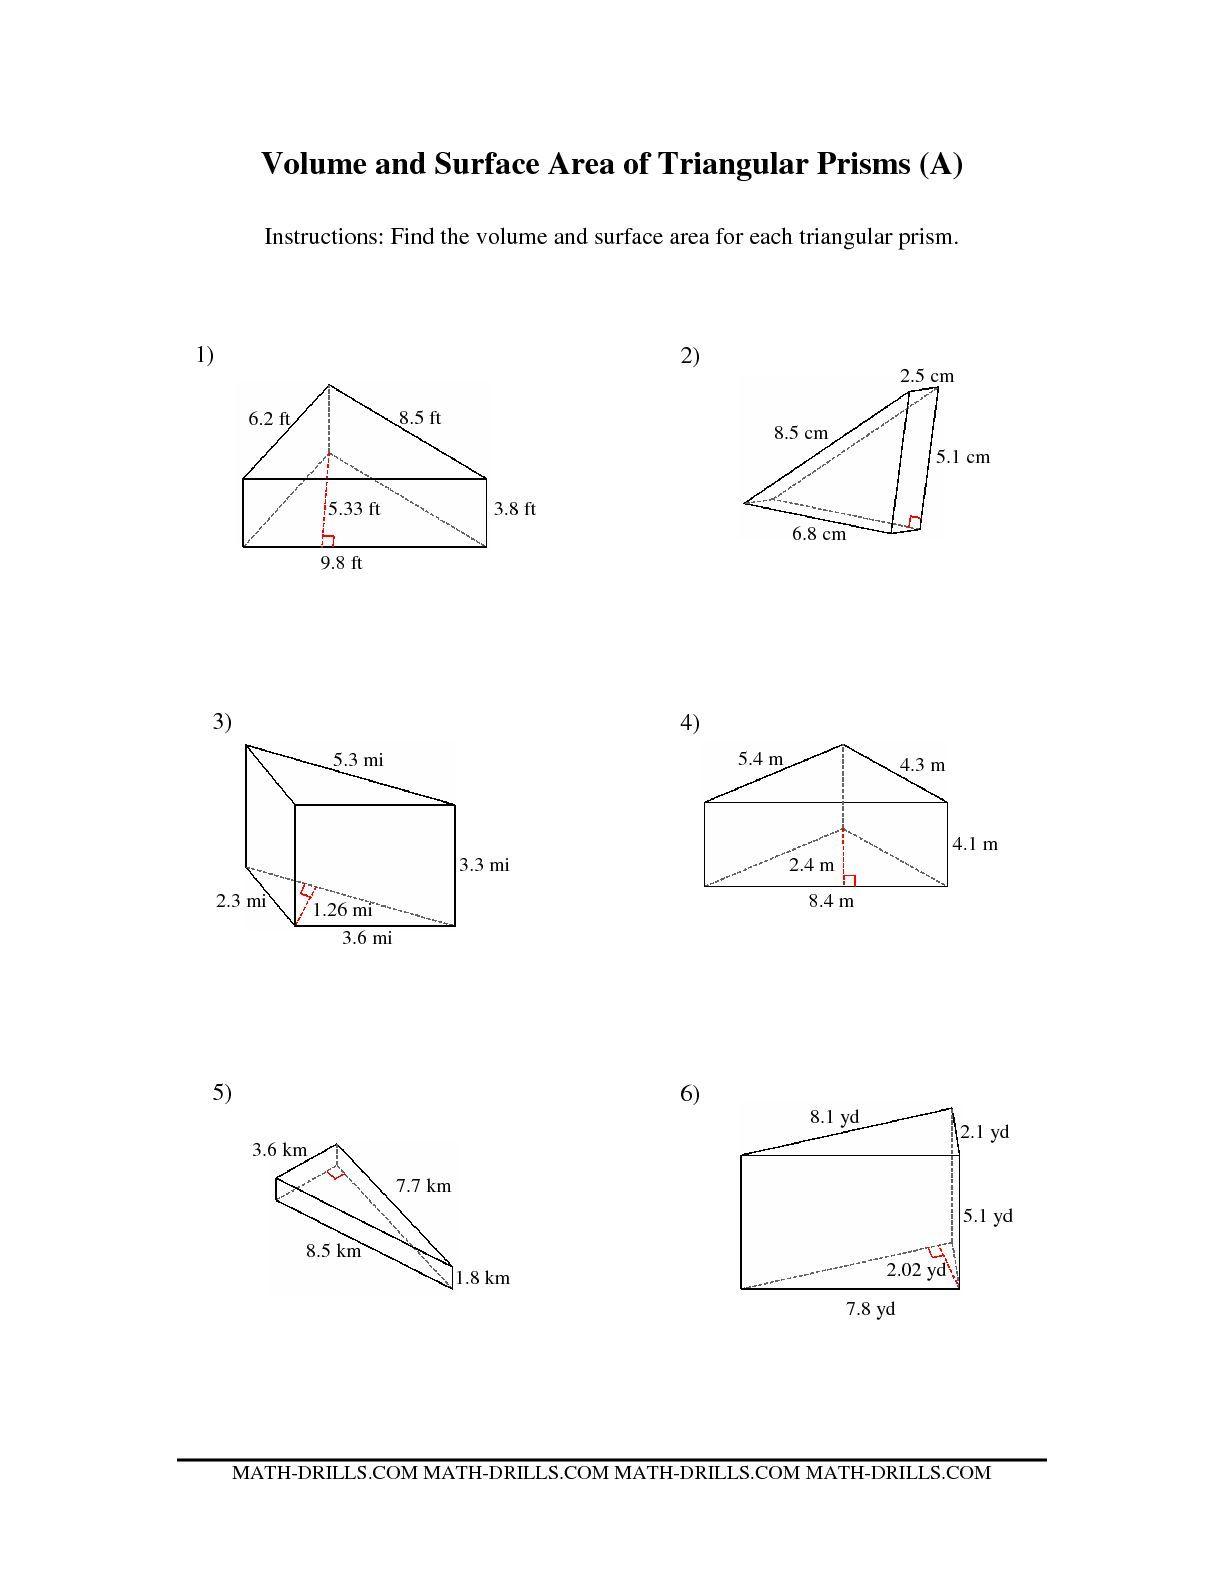 Worksheets Surface Area And Volume Grade 7 Worksheet the volume and surface area of triangular prisms a math worksheet from measurement